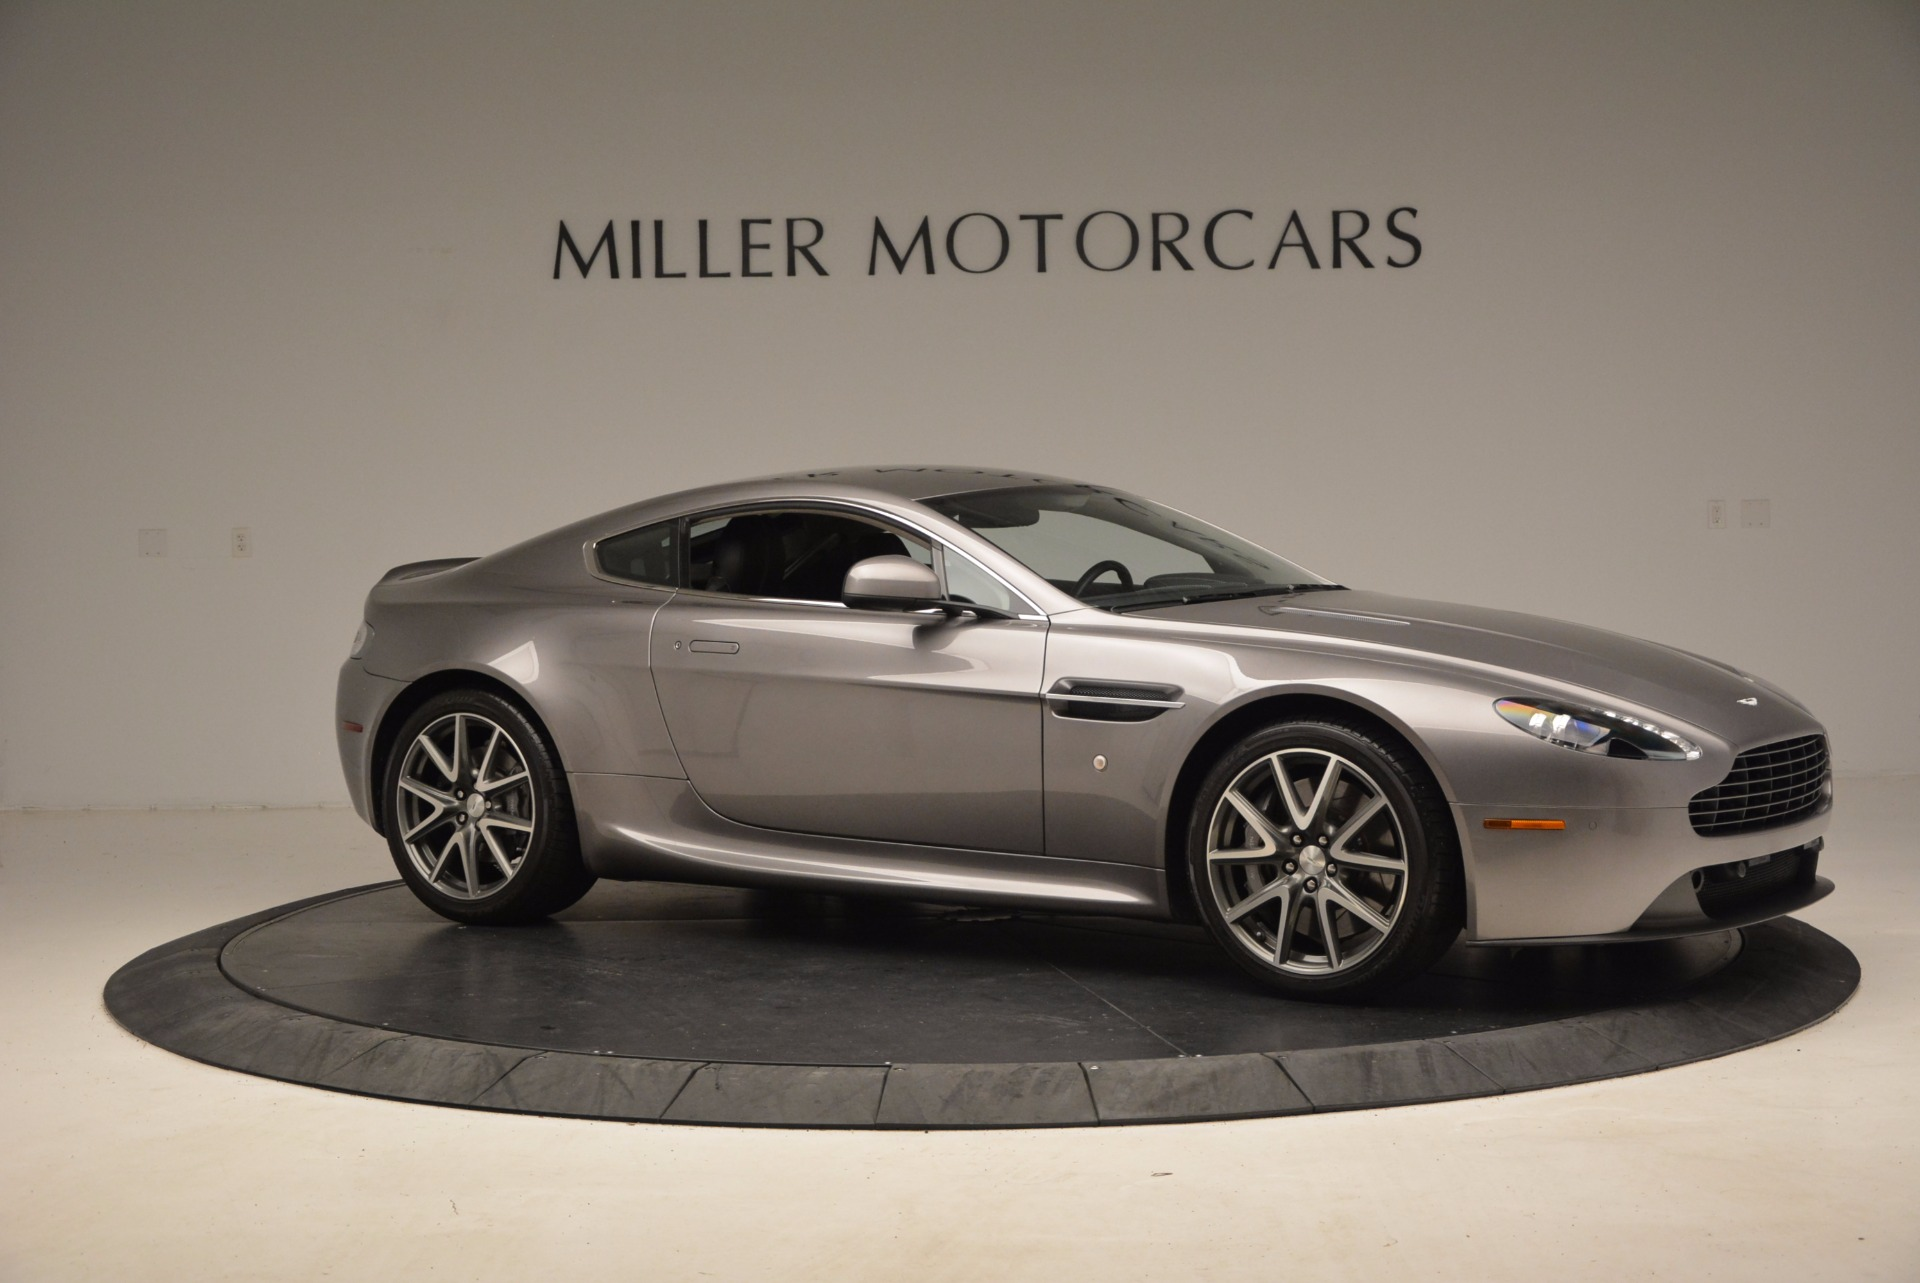 Used 2012 Aston Martin V8 Vantage  For Sale In Westport, CT 1497_p10